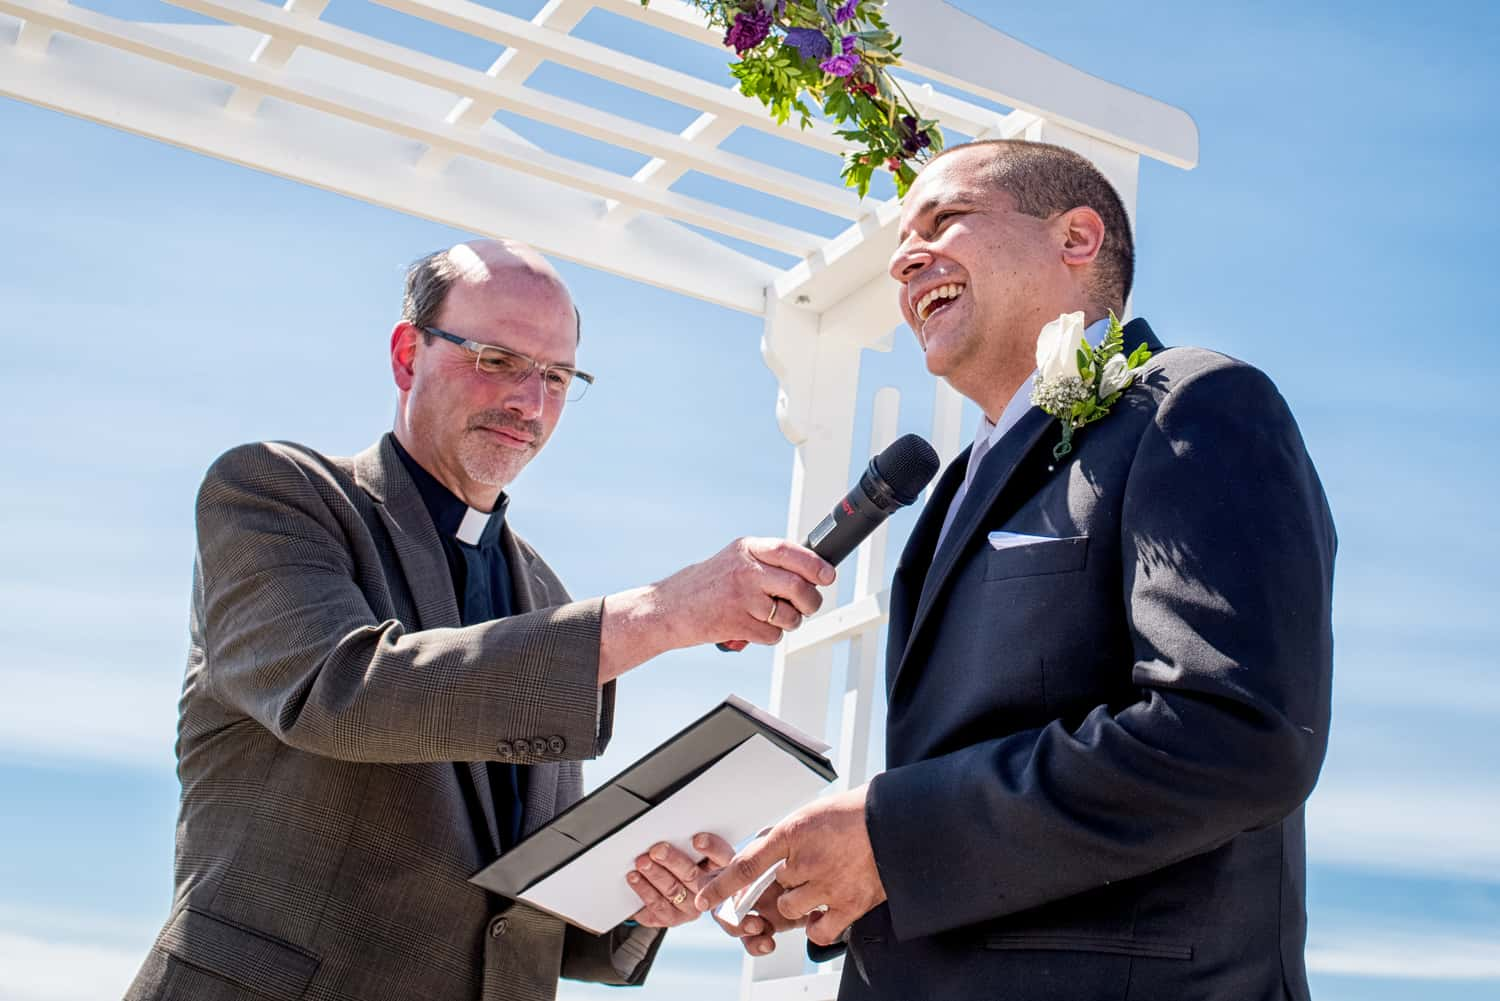 Officiant holds a microphone to the grooms mouth while he reads his vows. Behind them is a blue sky and a white arch with purple flowers.